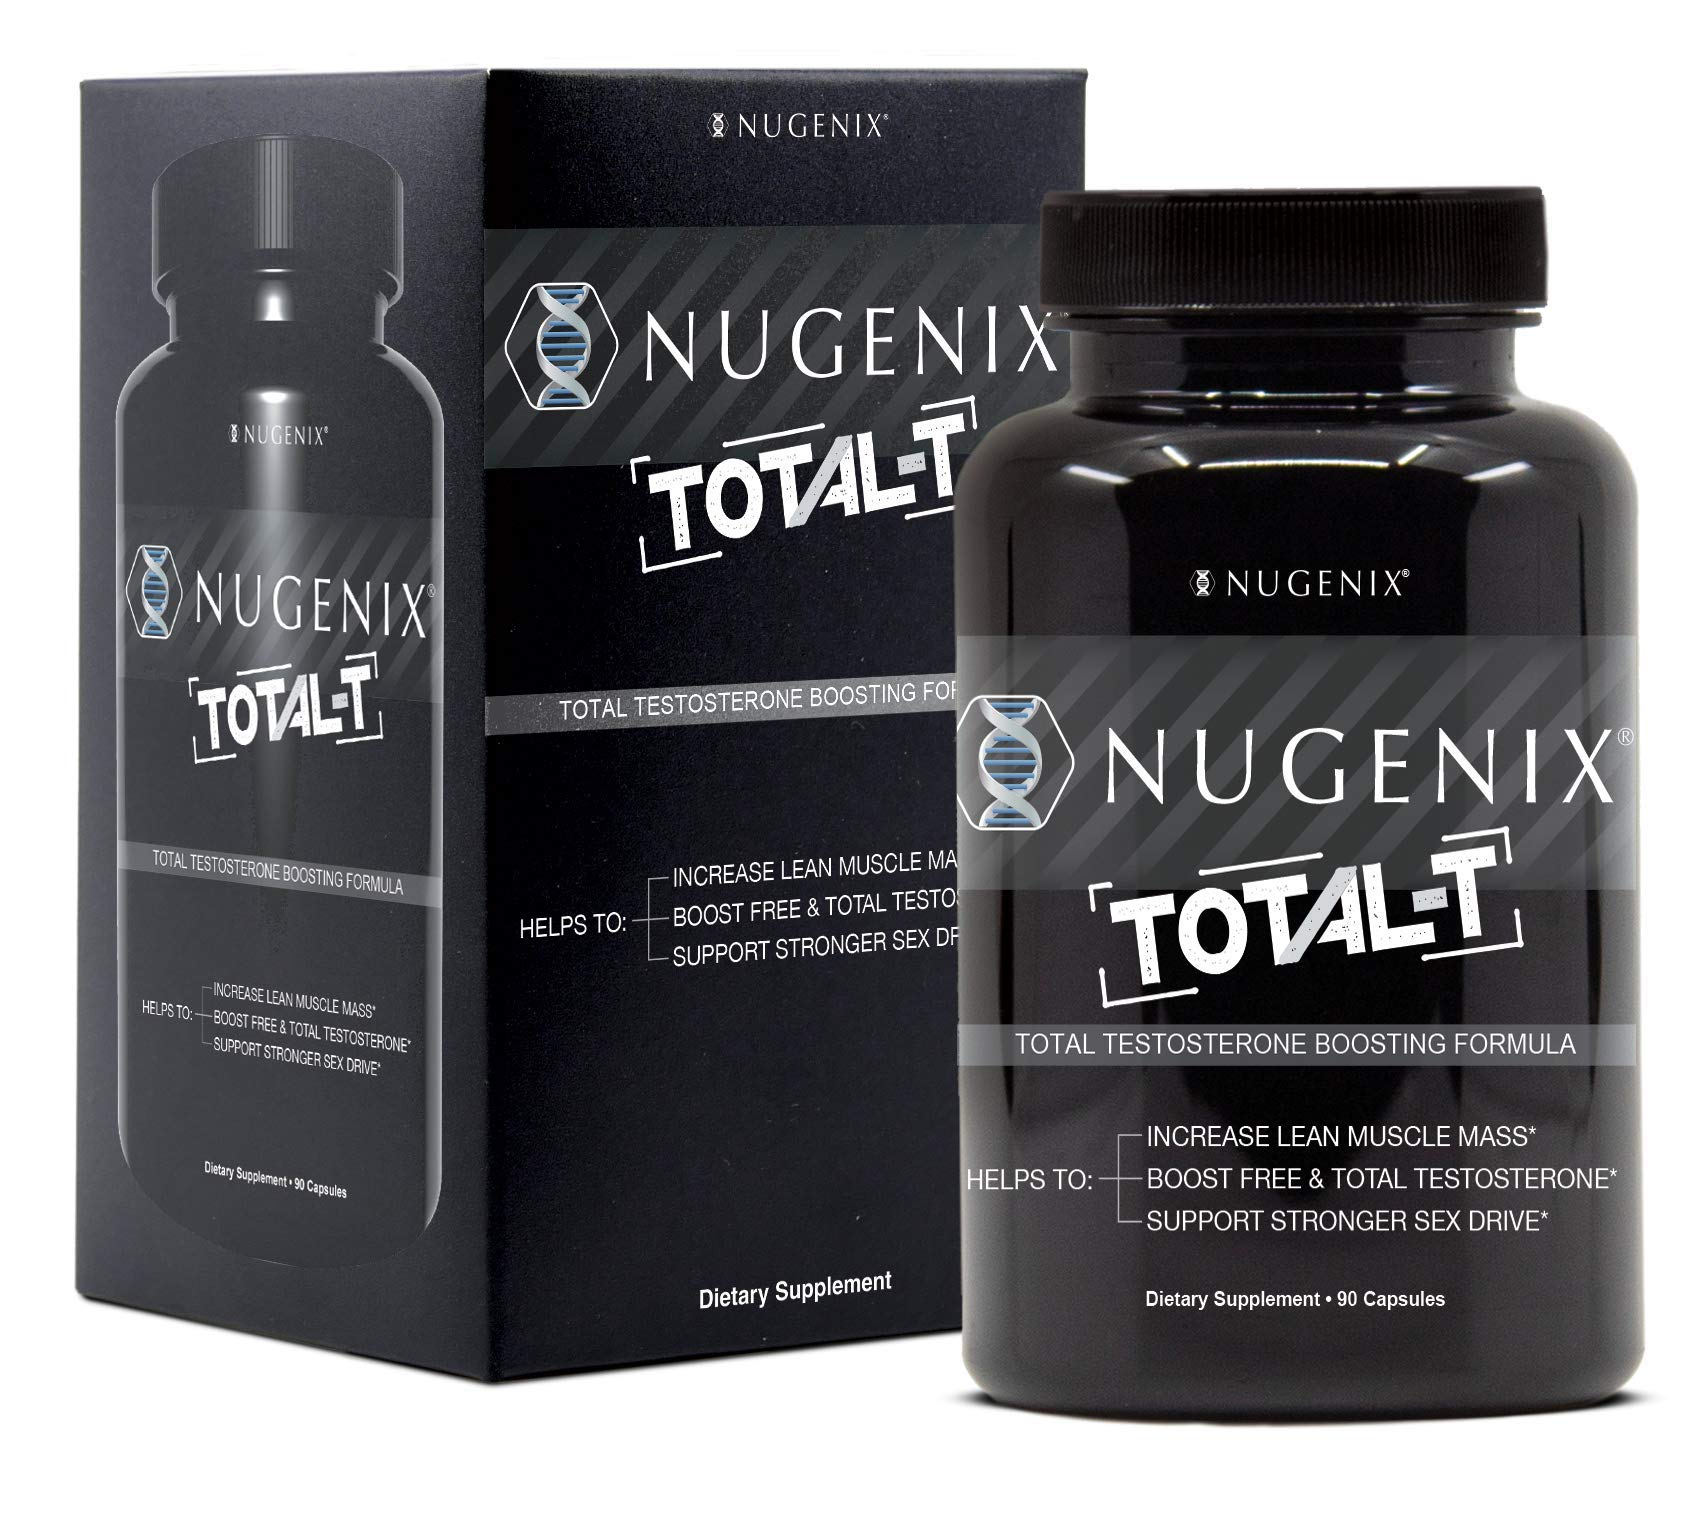 Nugenix Total-T: Men's Total Testosterone Boosting Formula. All New, High Potency, High Bioavailibility Testosterone Boosting Ingredients. Helps with Energy, Muscle, Libido, Stamina, and Drive by Nugenix (Image #1)